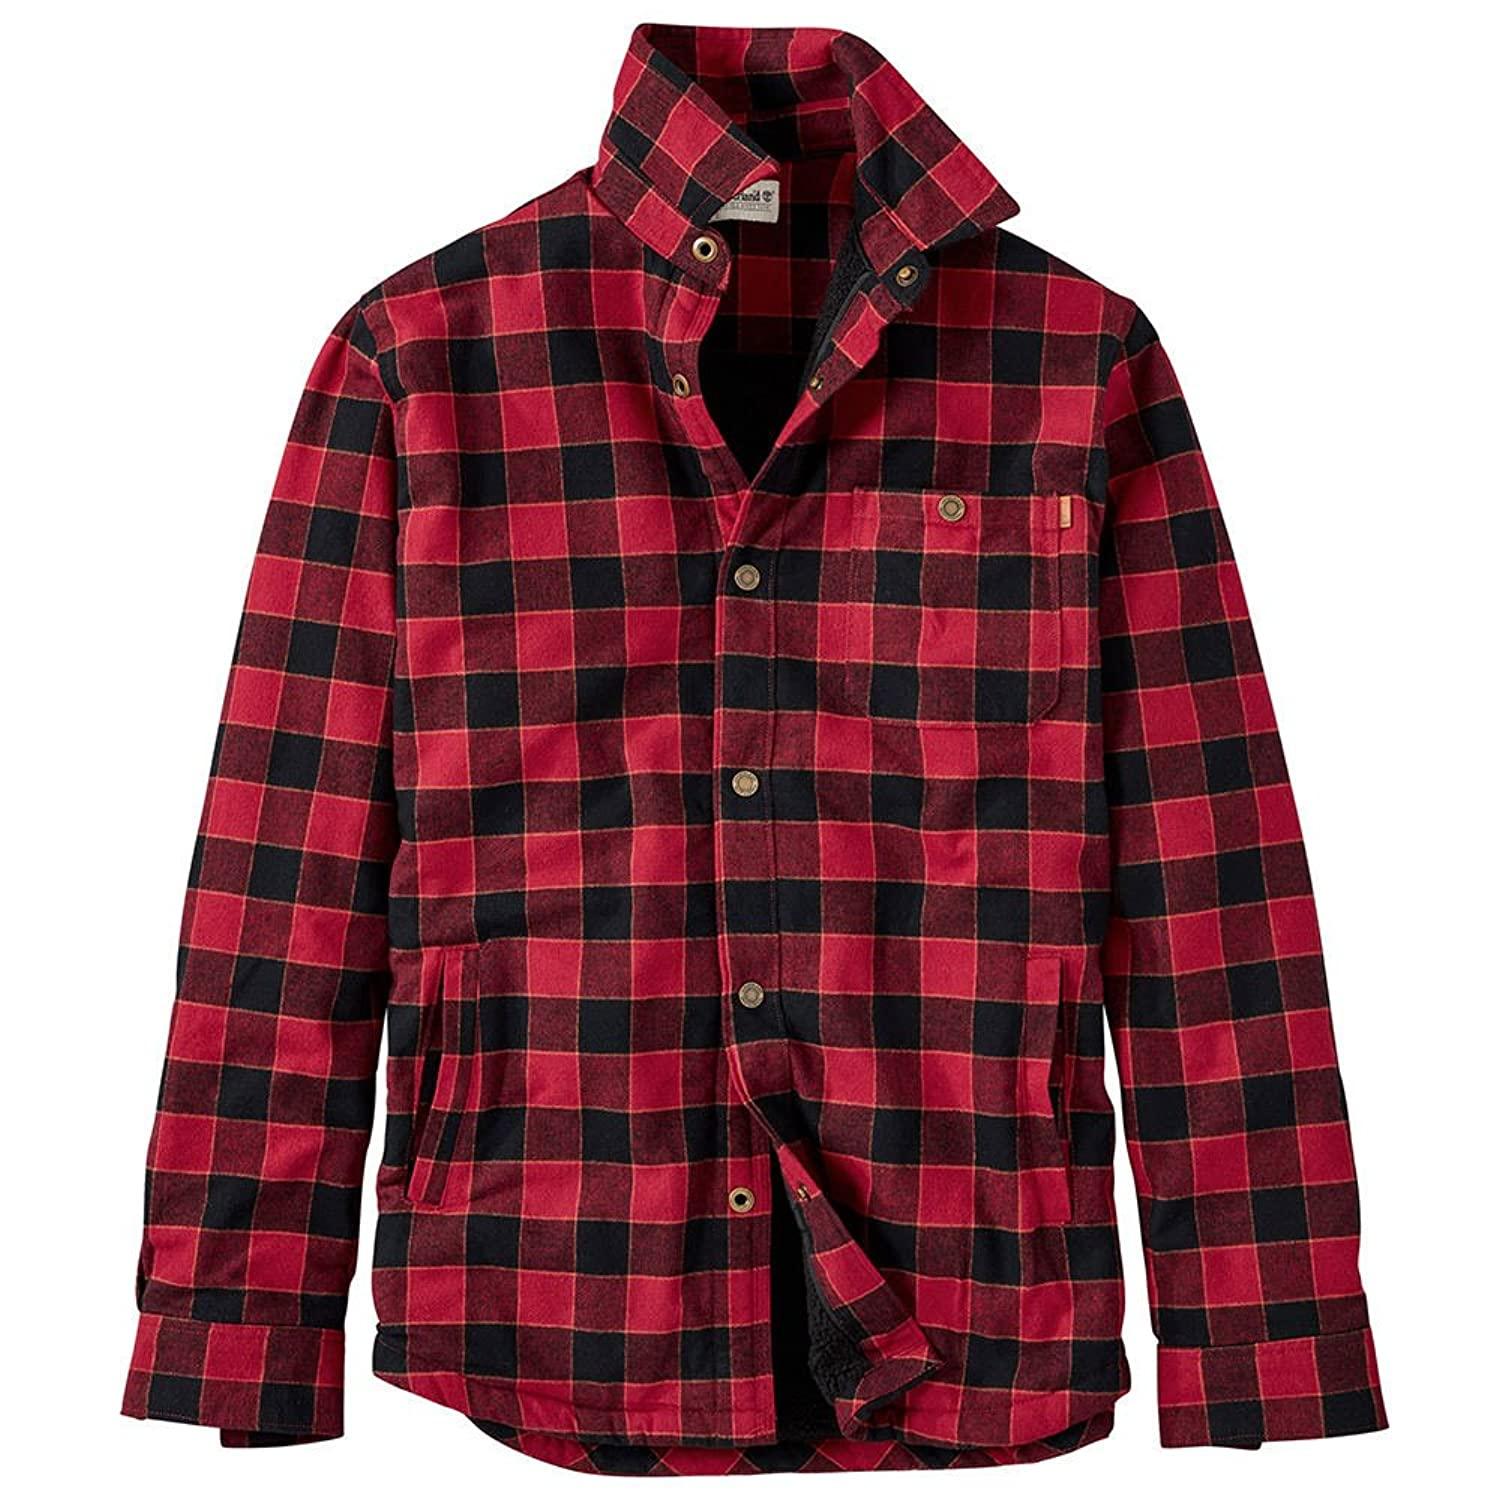 Timberland OUTERWEAR メンズ B076YTX7V6  Tibetan Red-black-plaid 3L